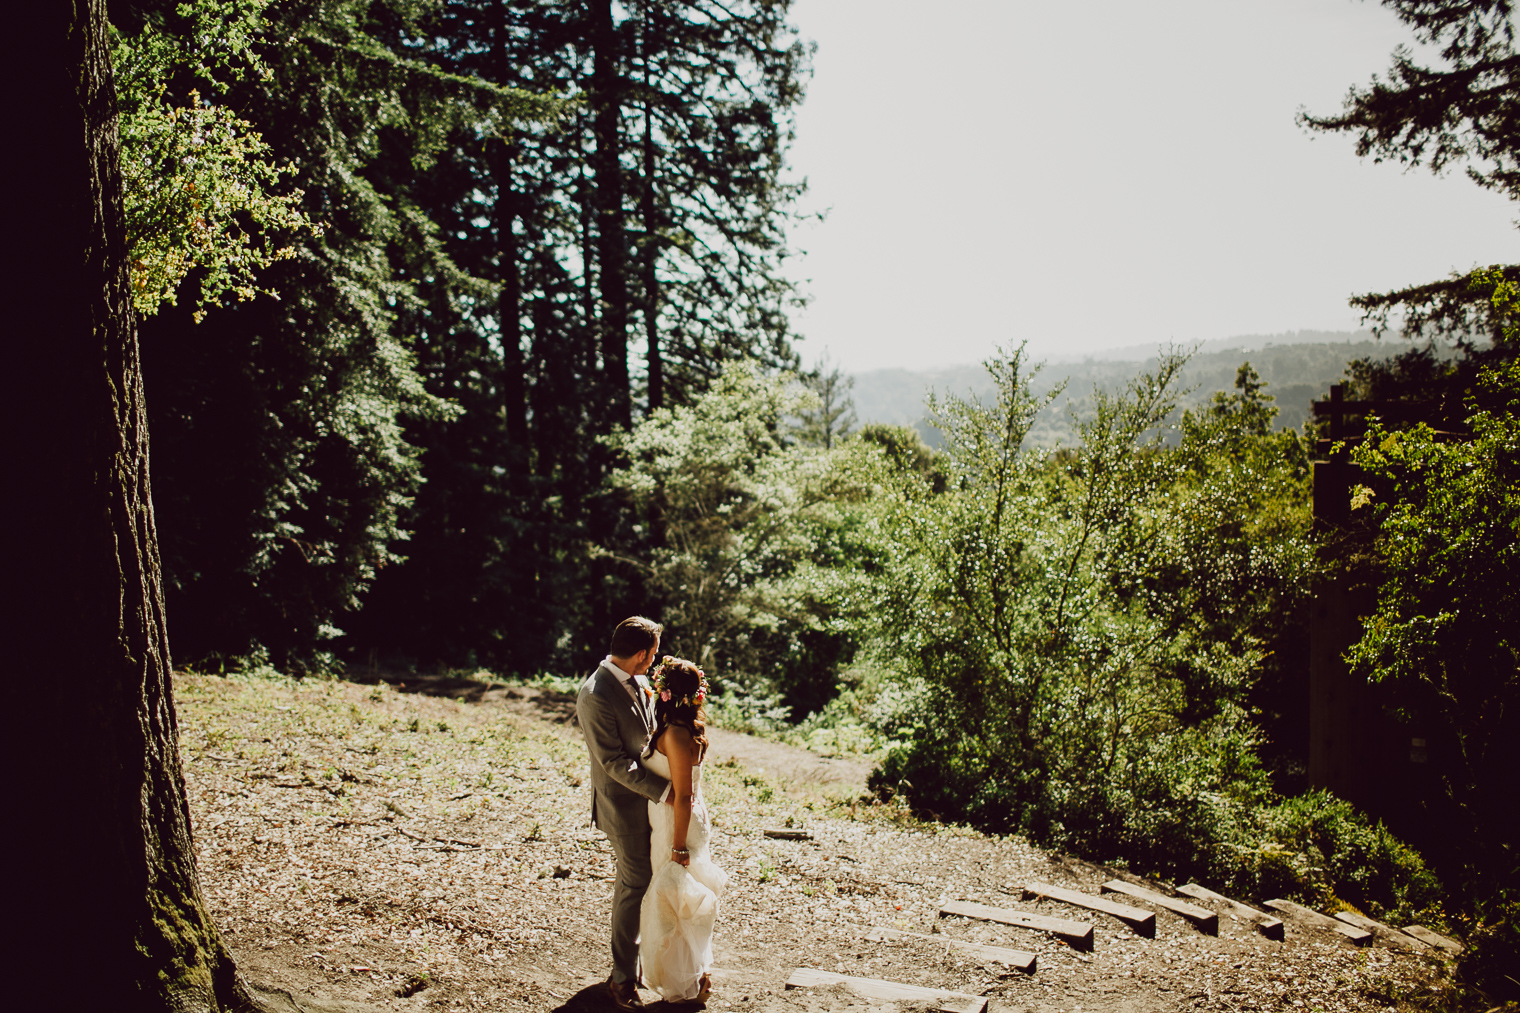 camp-kennolyn-wedding-photographer-82.jpg